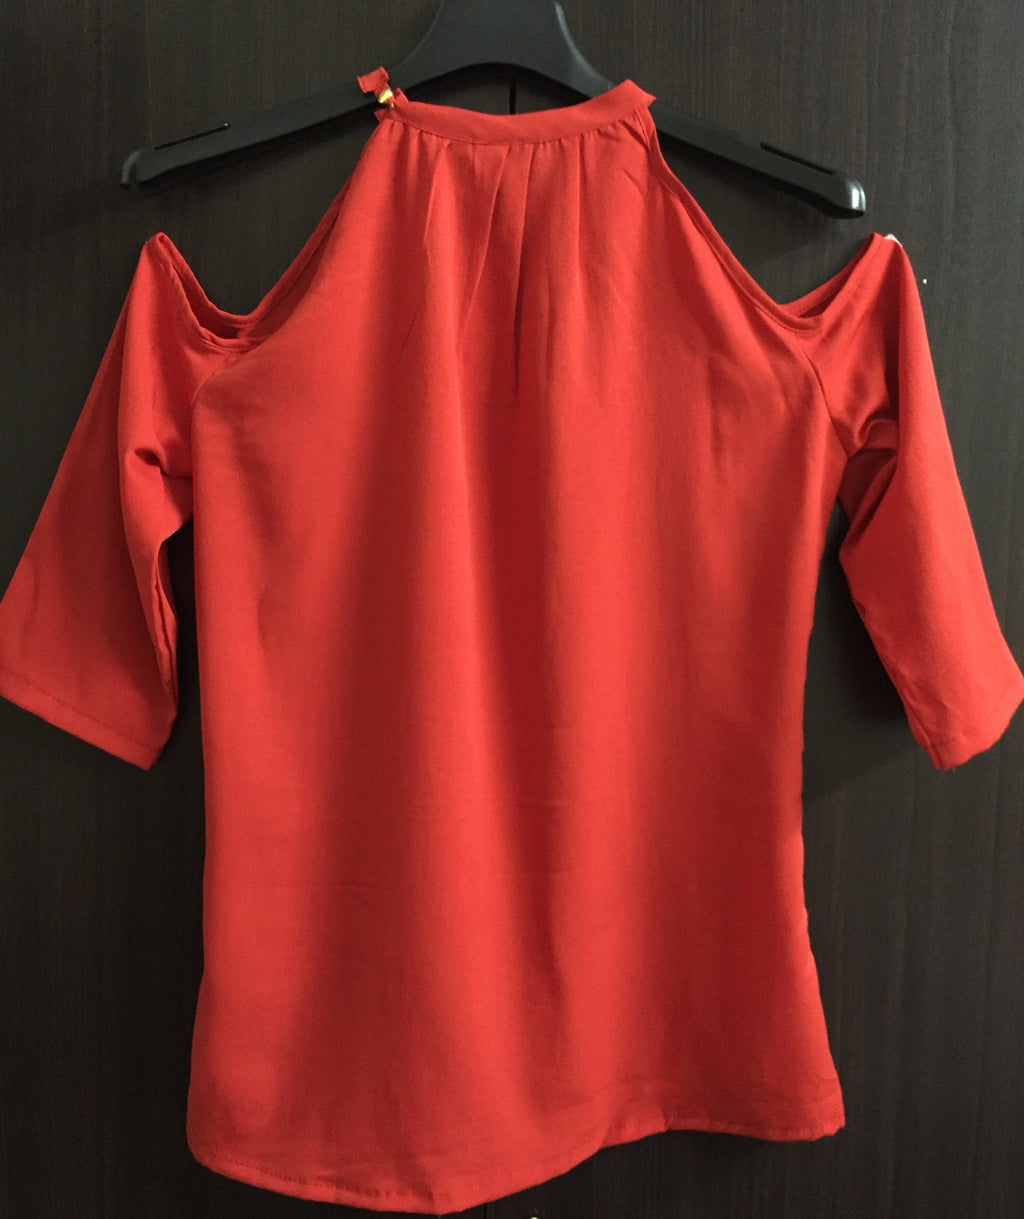 Stylish Cold Shoulder Top - Red